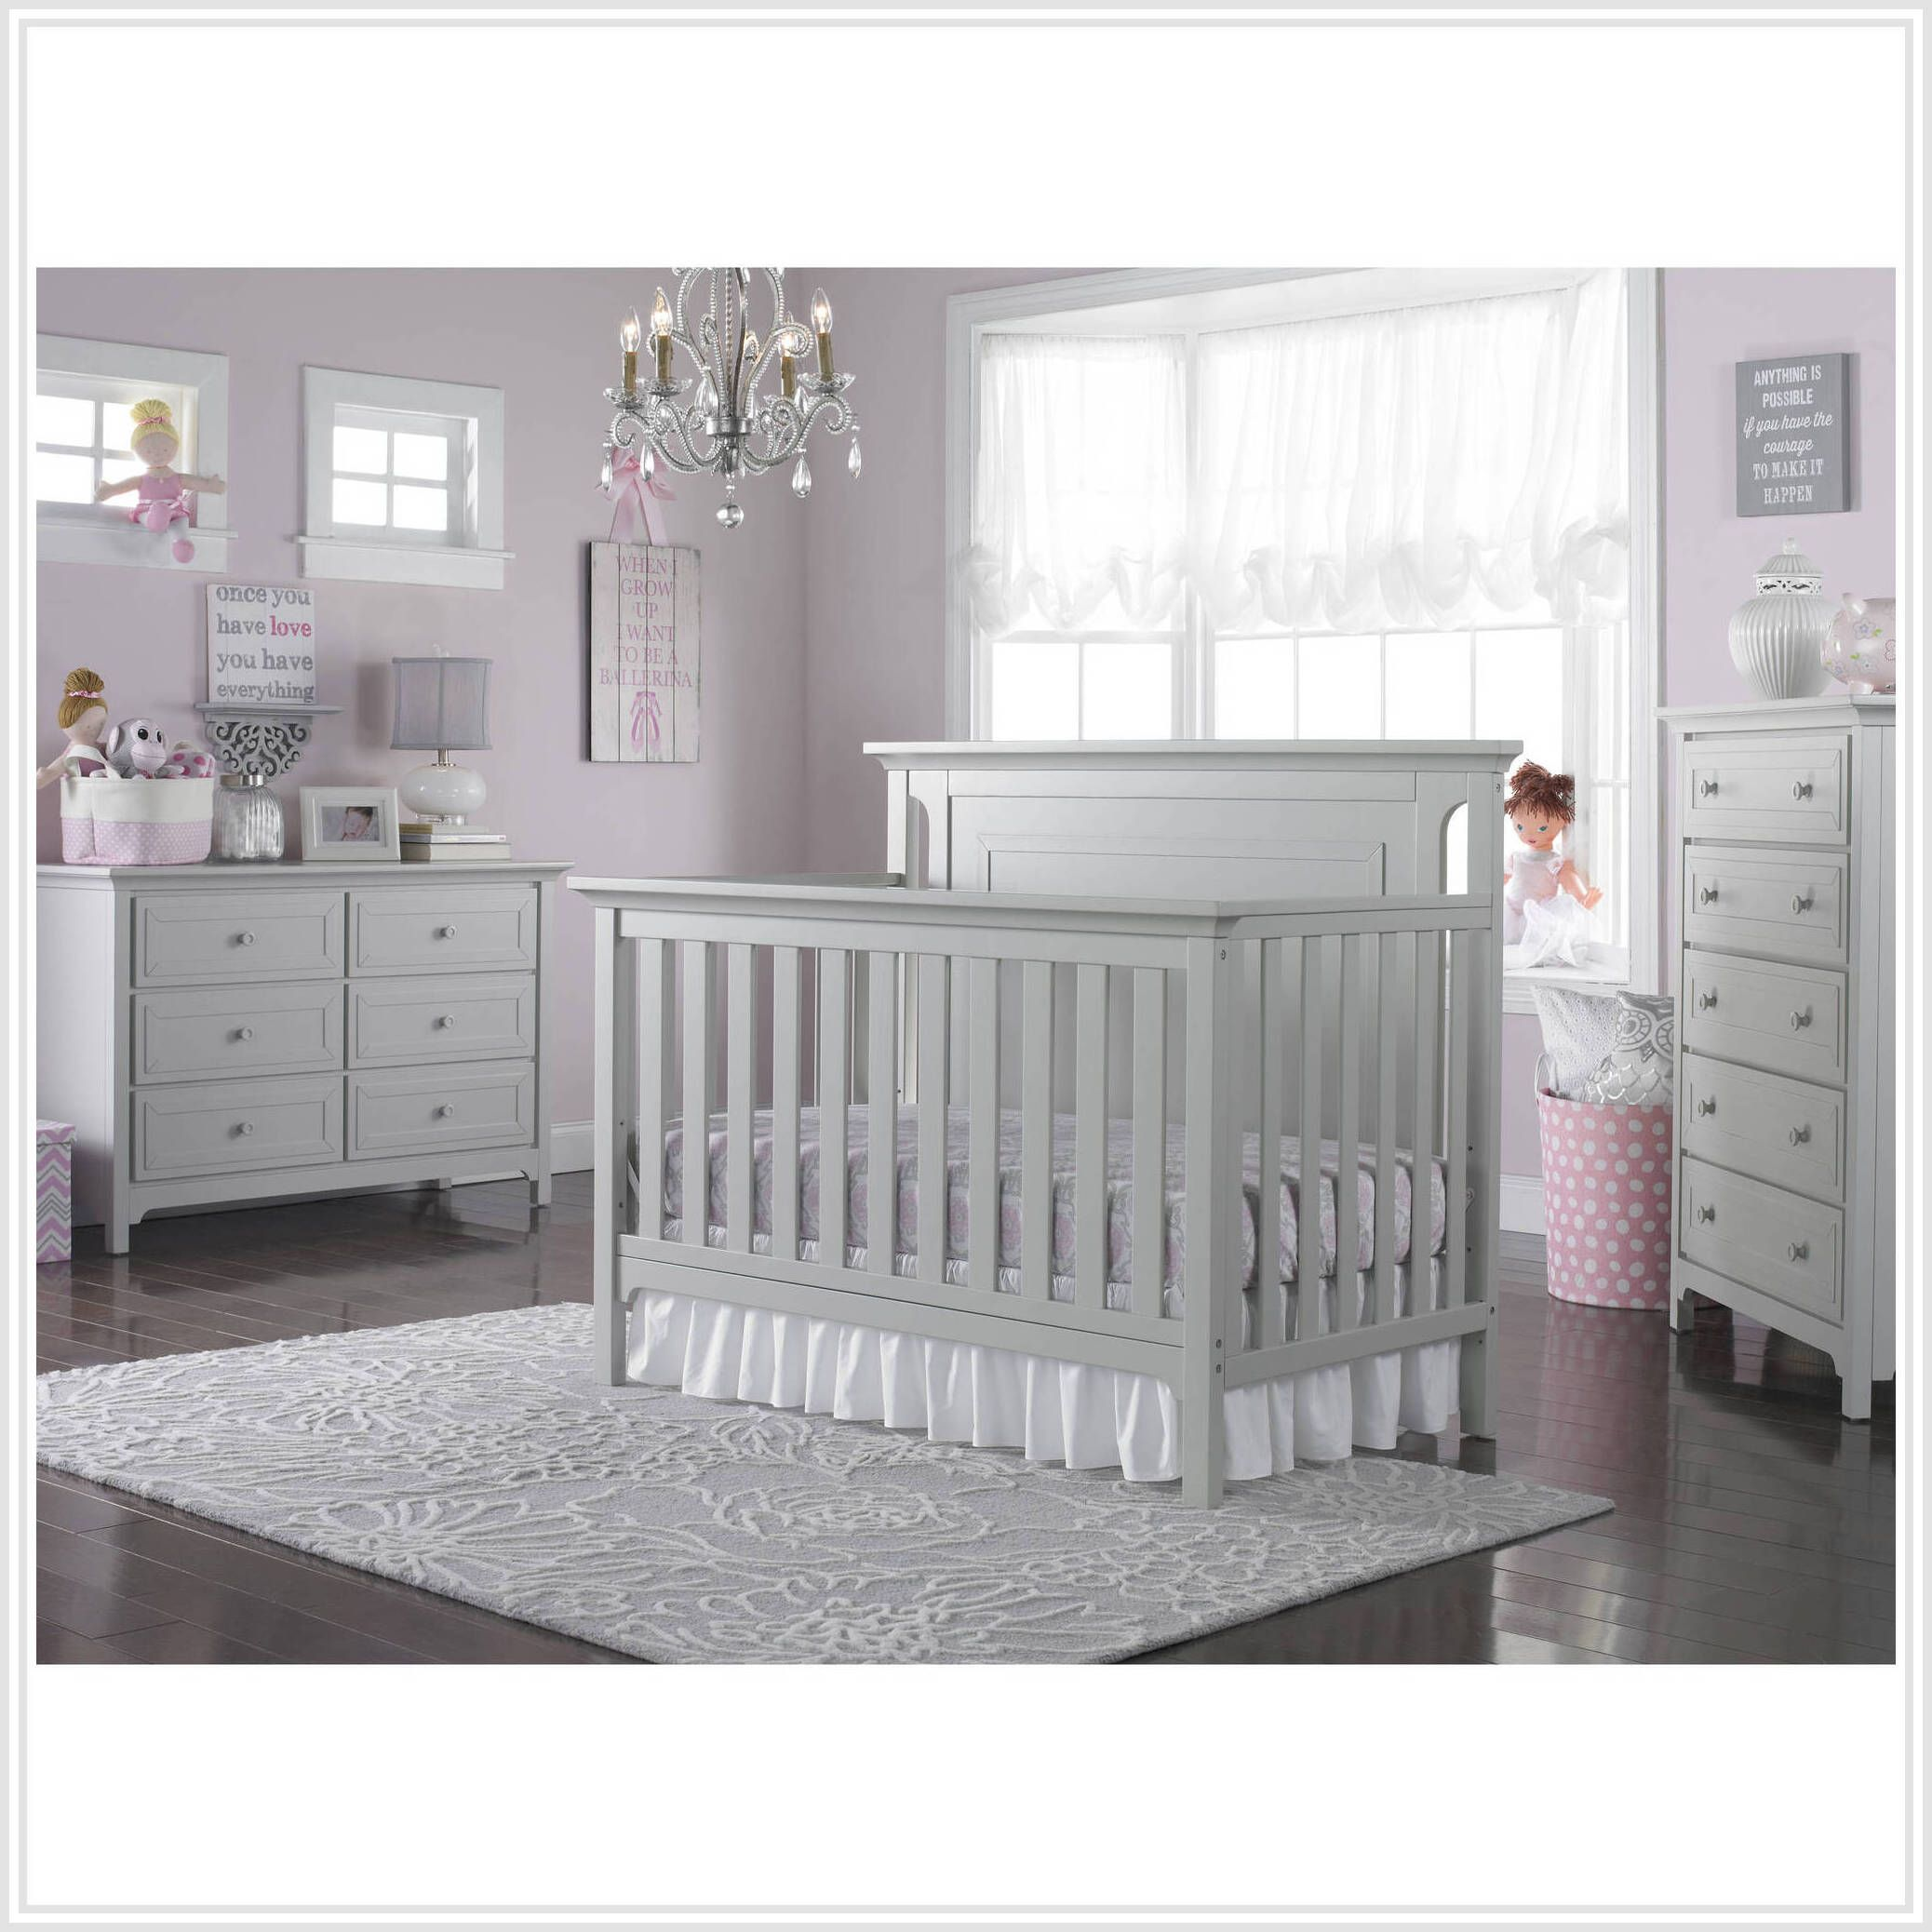 39 Reference Of Crib And Dresser Set Gray In 2020 Baby Furniture Sets White Dresser Nursery Nursery Furniture Sets